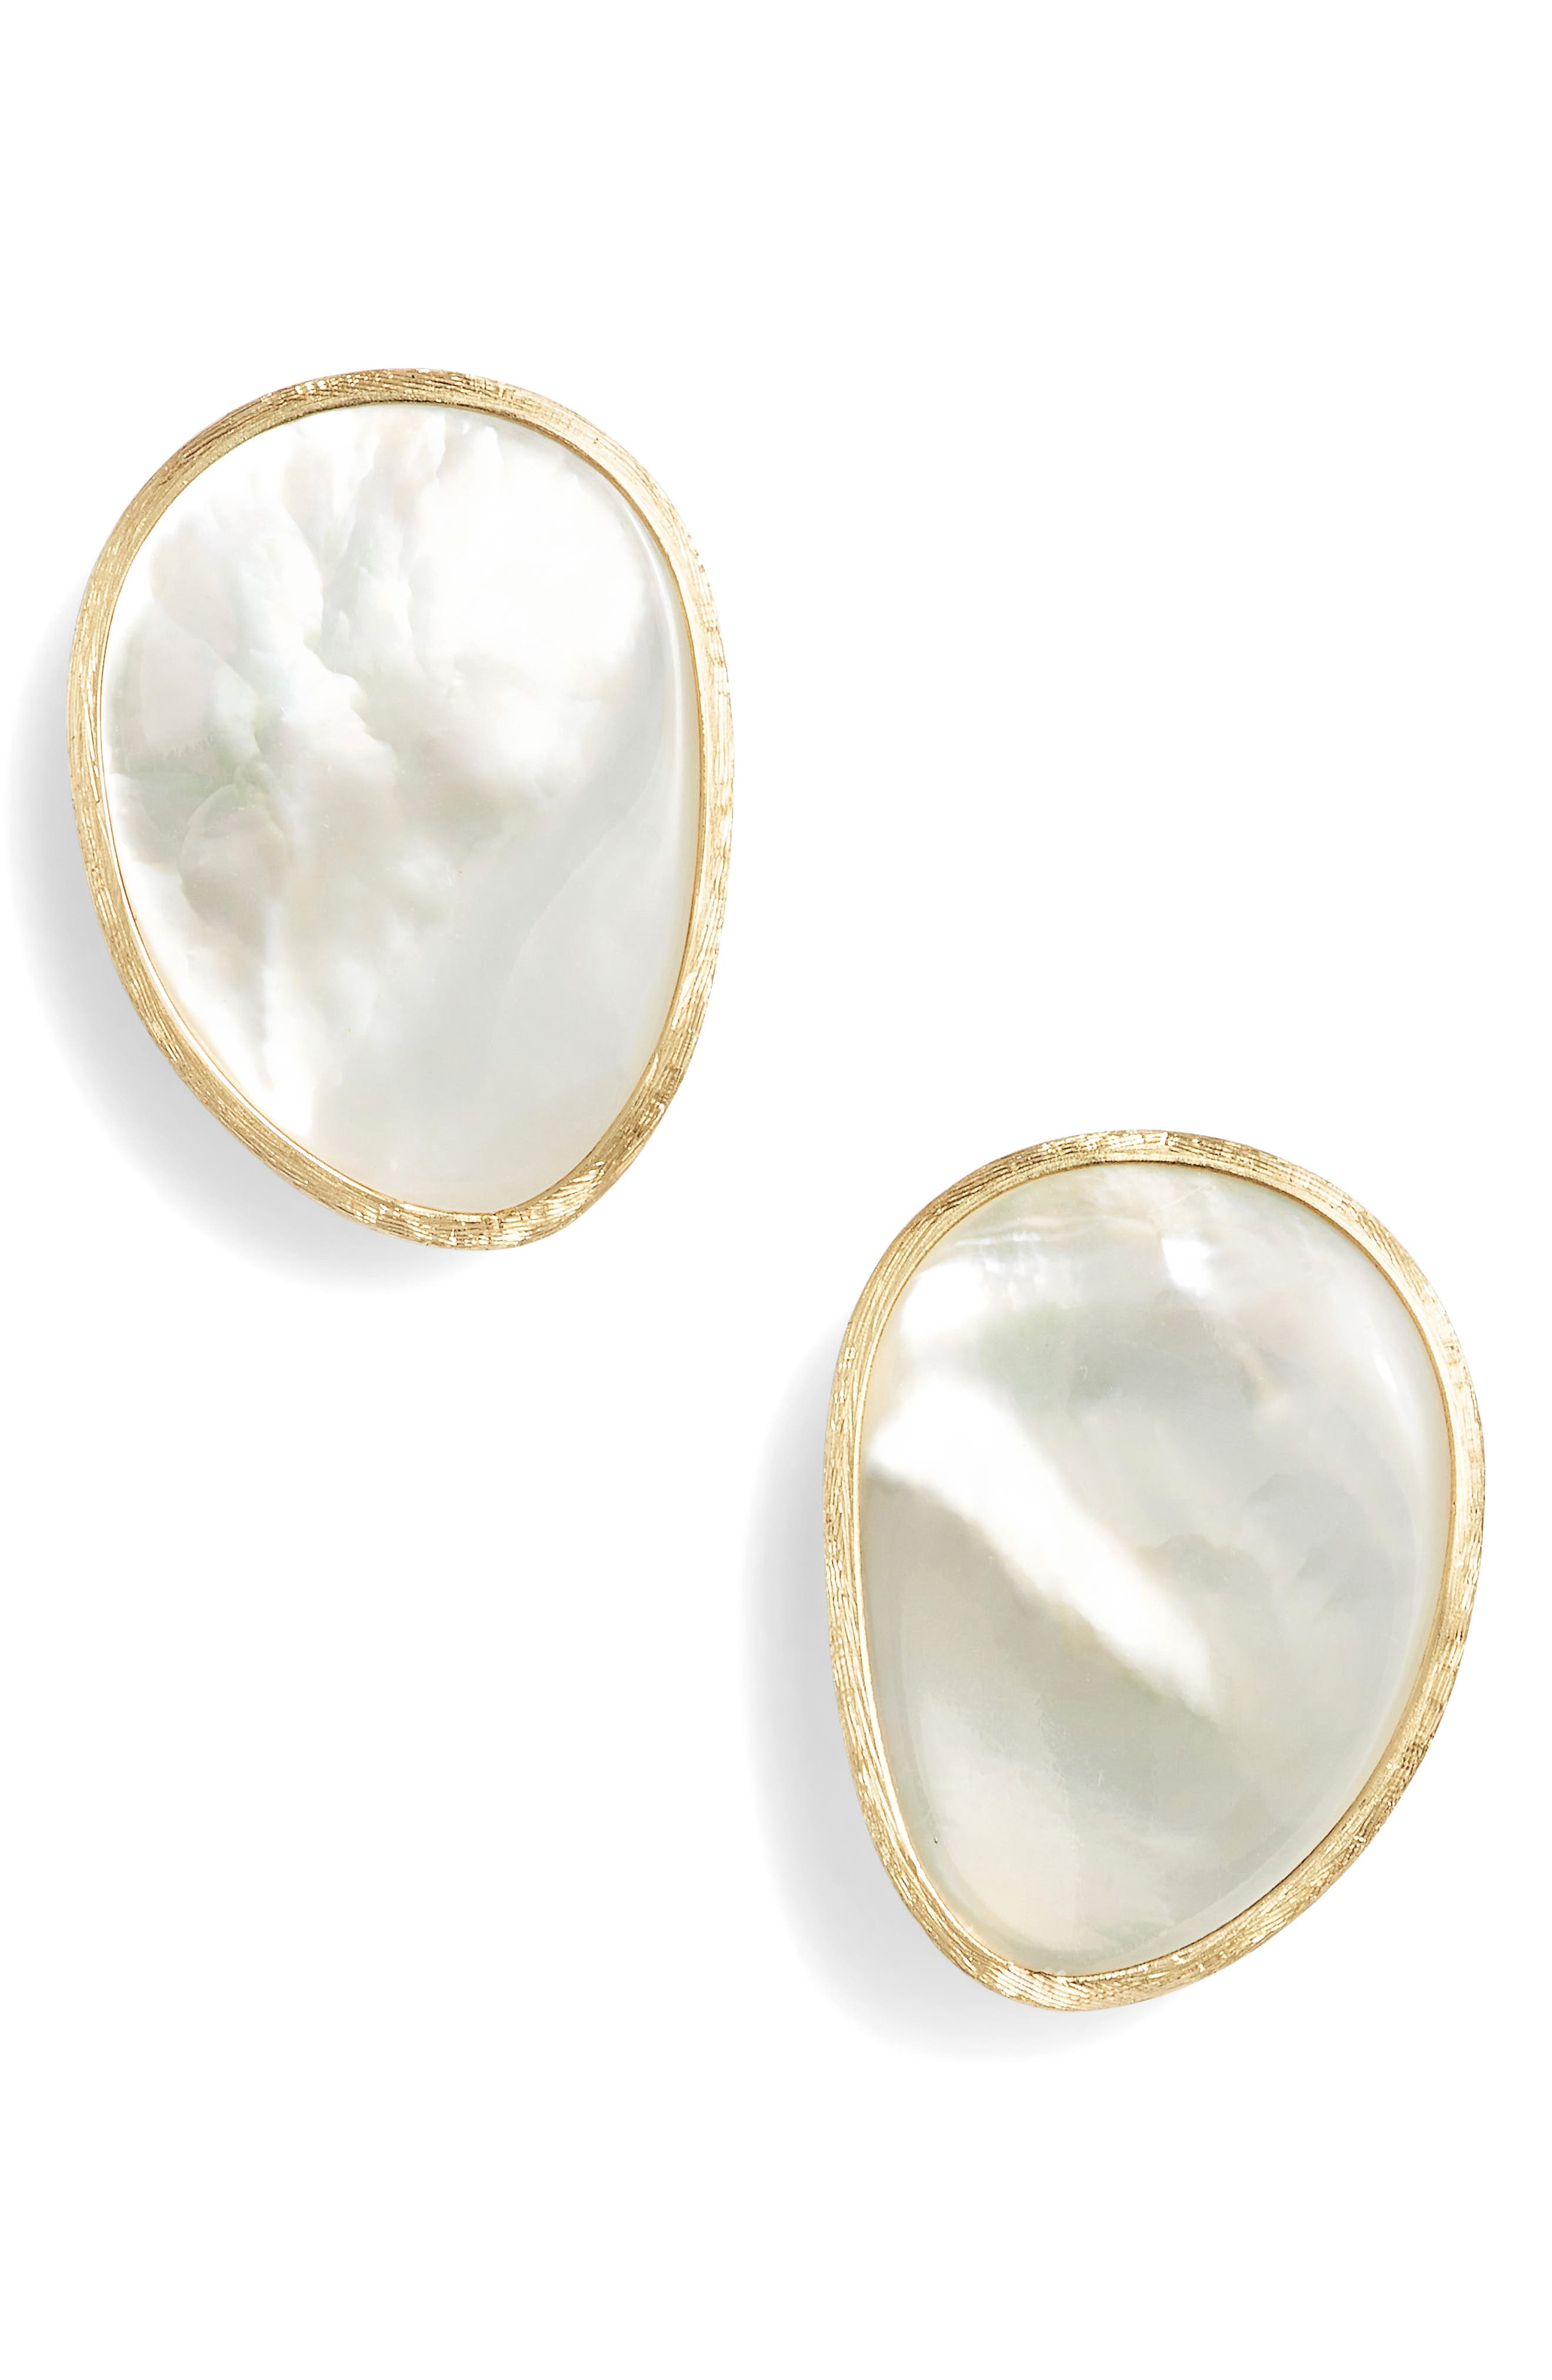 Main Image - Marco Bicego Lunaria Pearl Stud Earrings